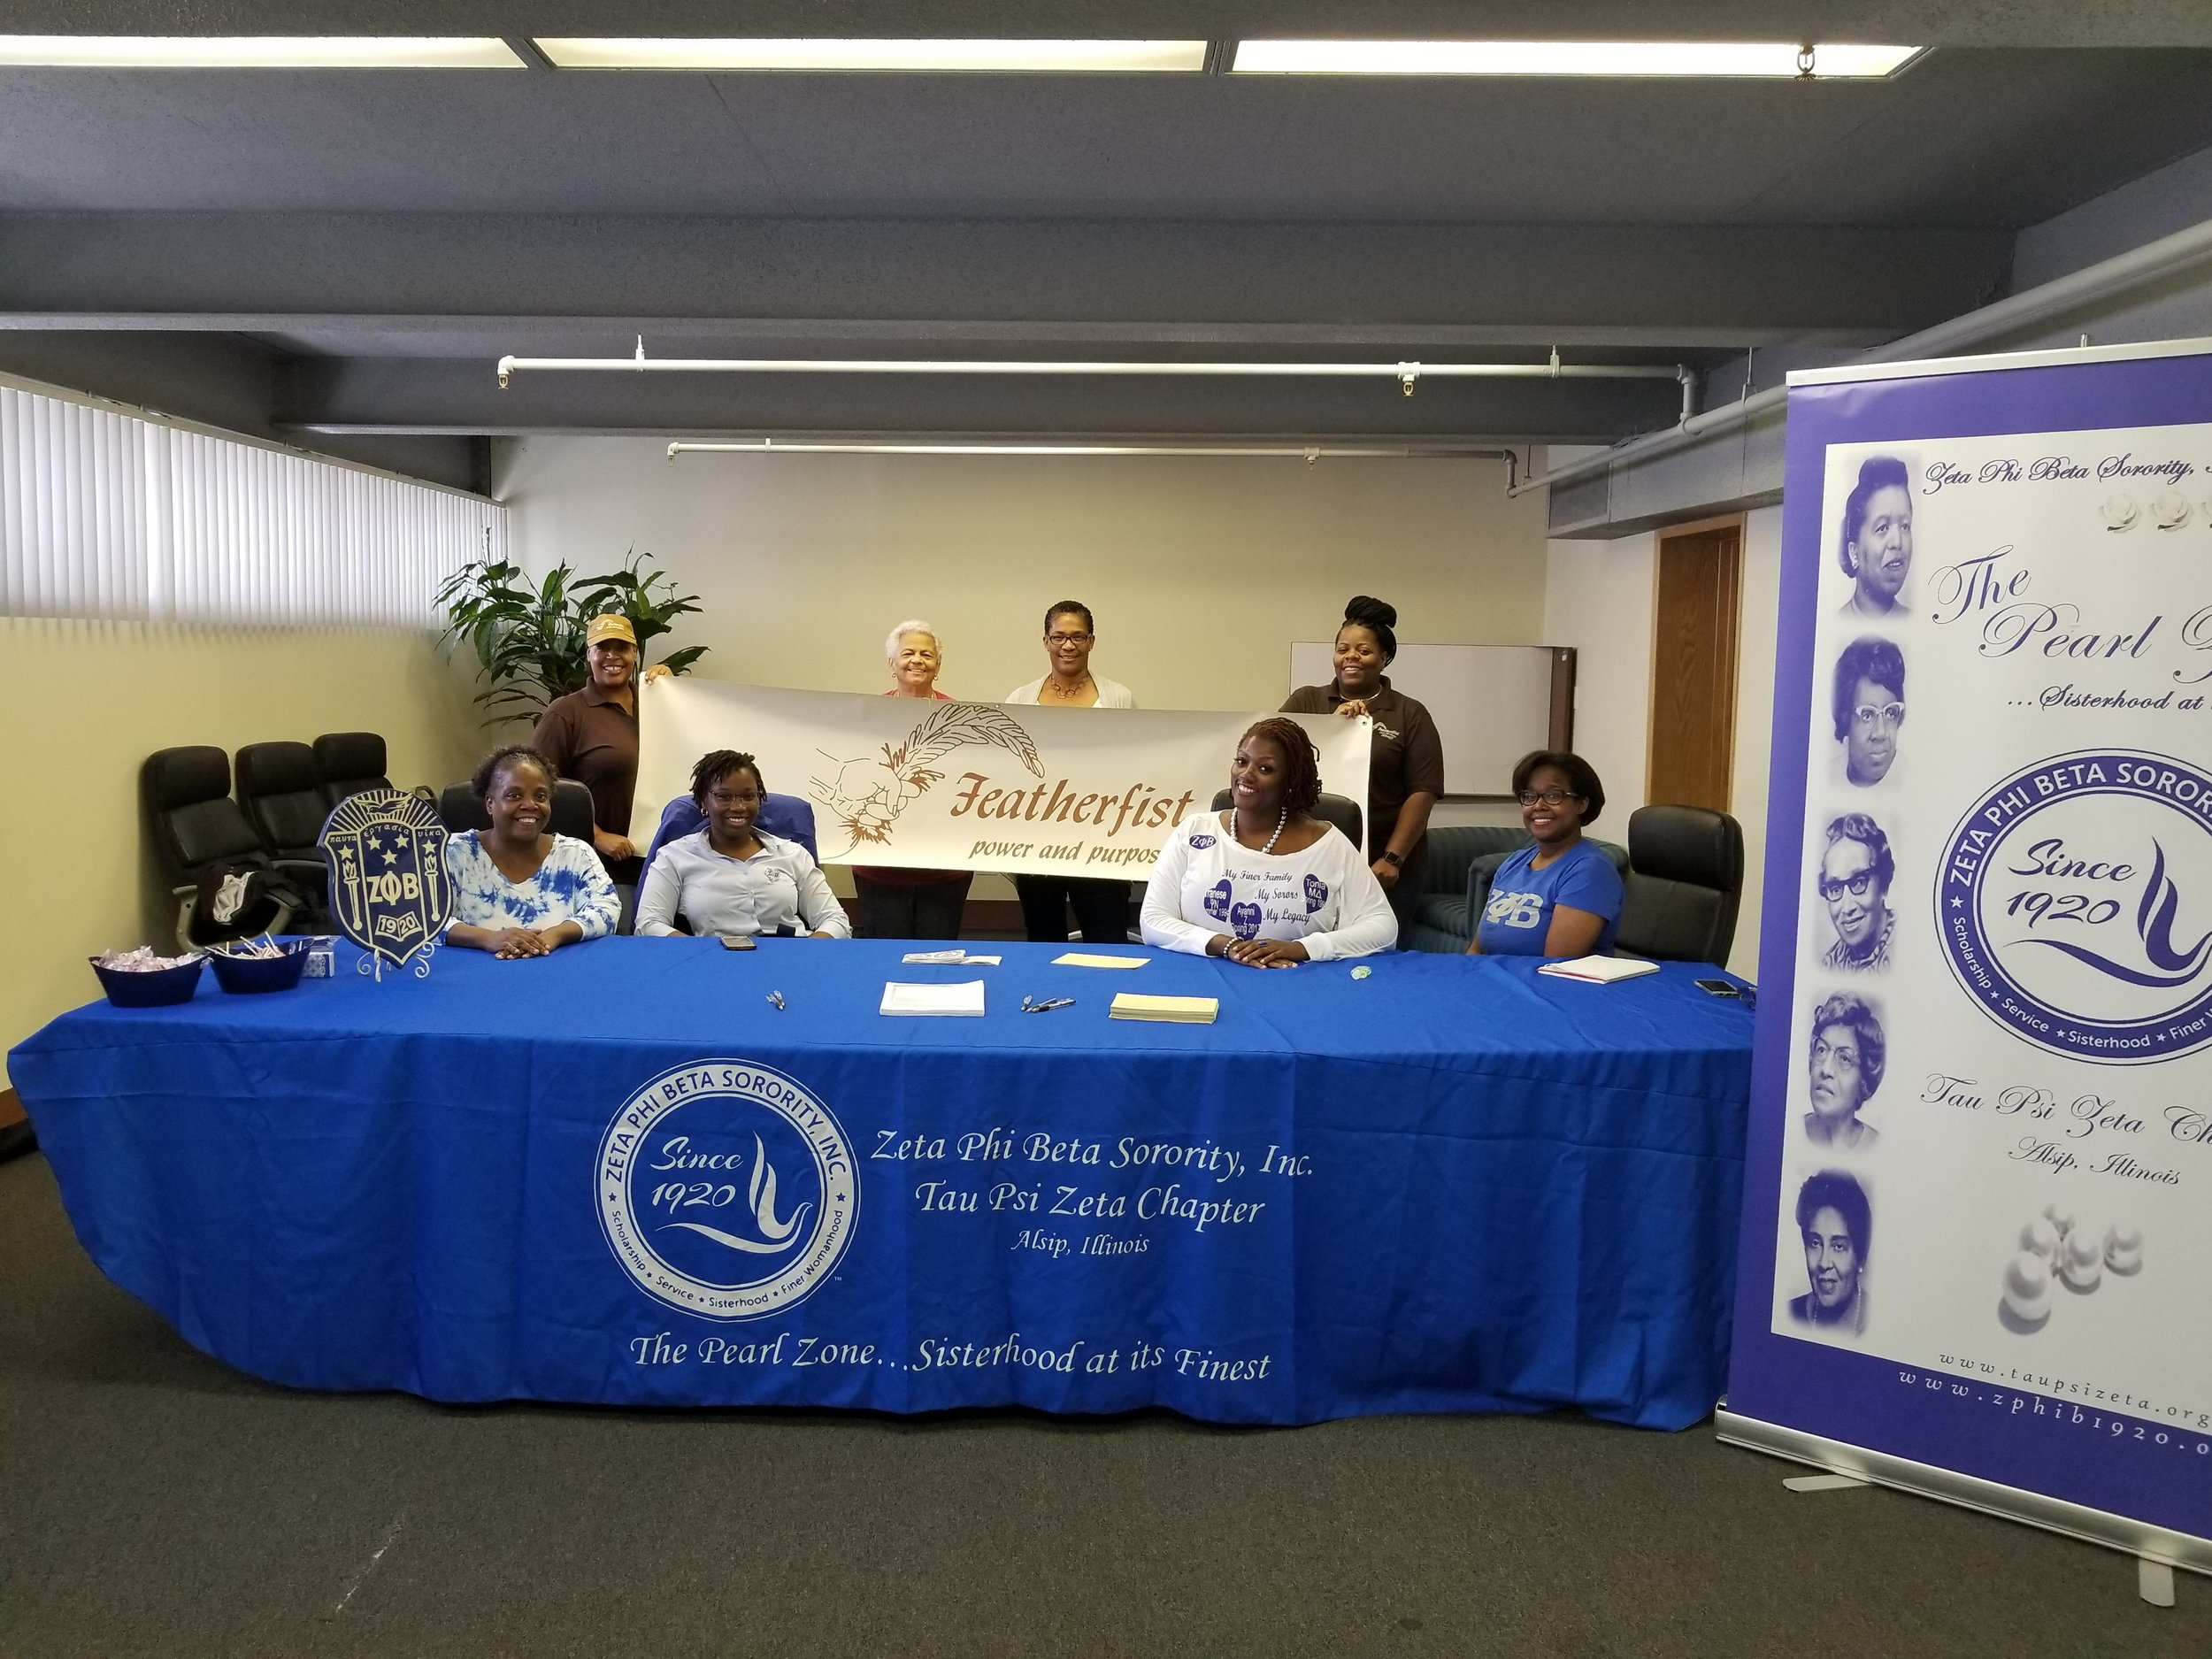 Sept 2018: Featherfist thanks Zeta Phi Beta Sorority, Inc. Tau Psi Zeta Chapter for sharing their time to help people in registering to vote.